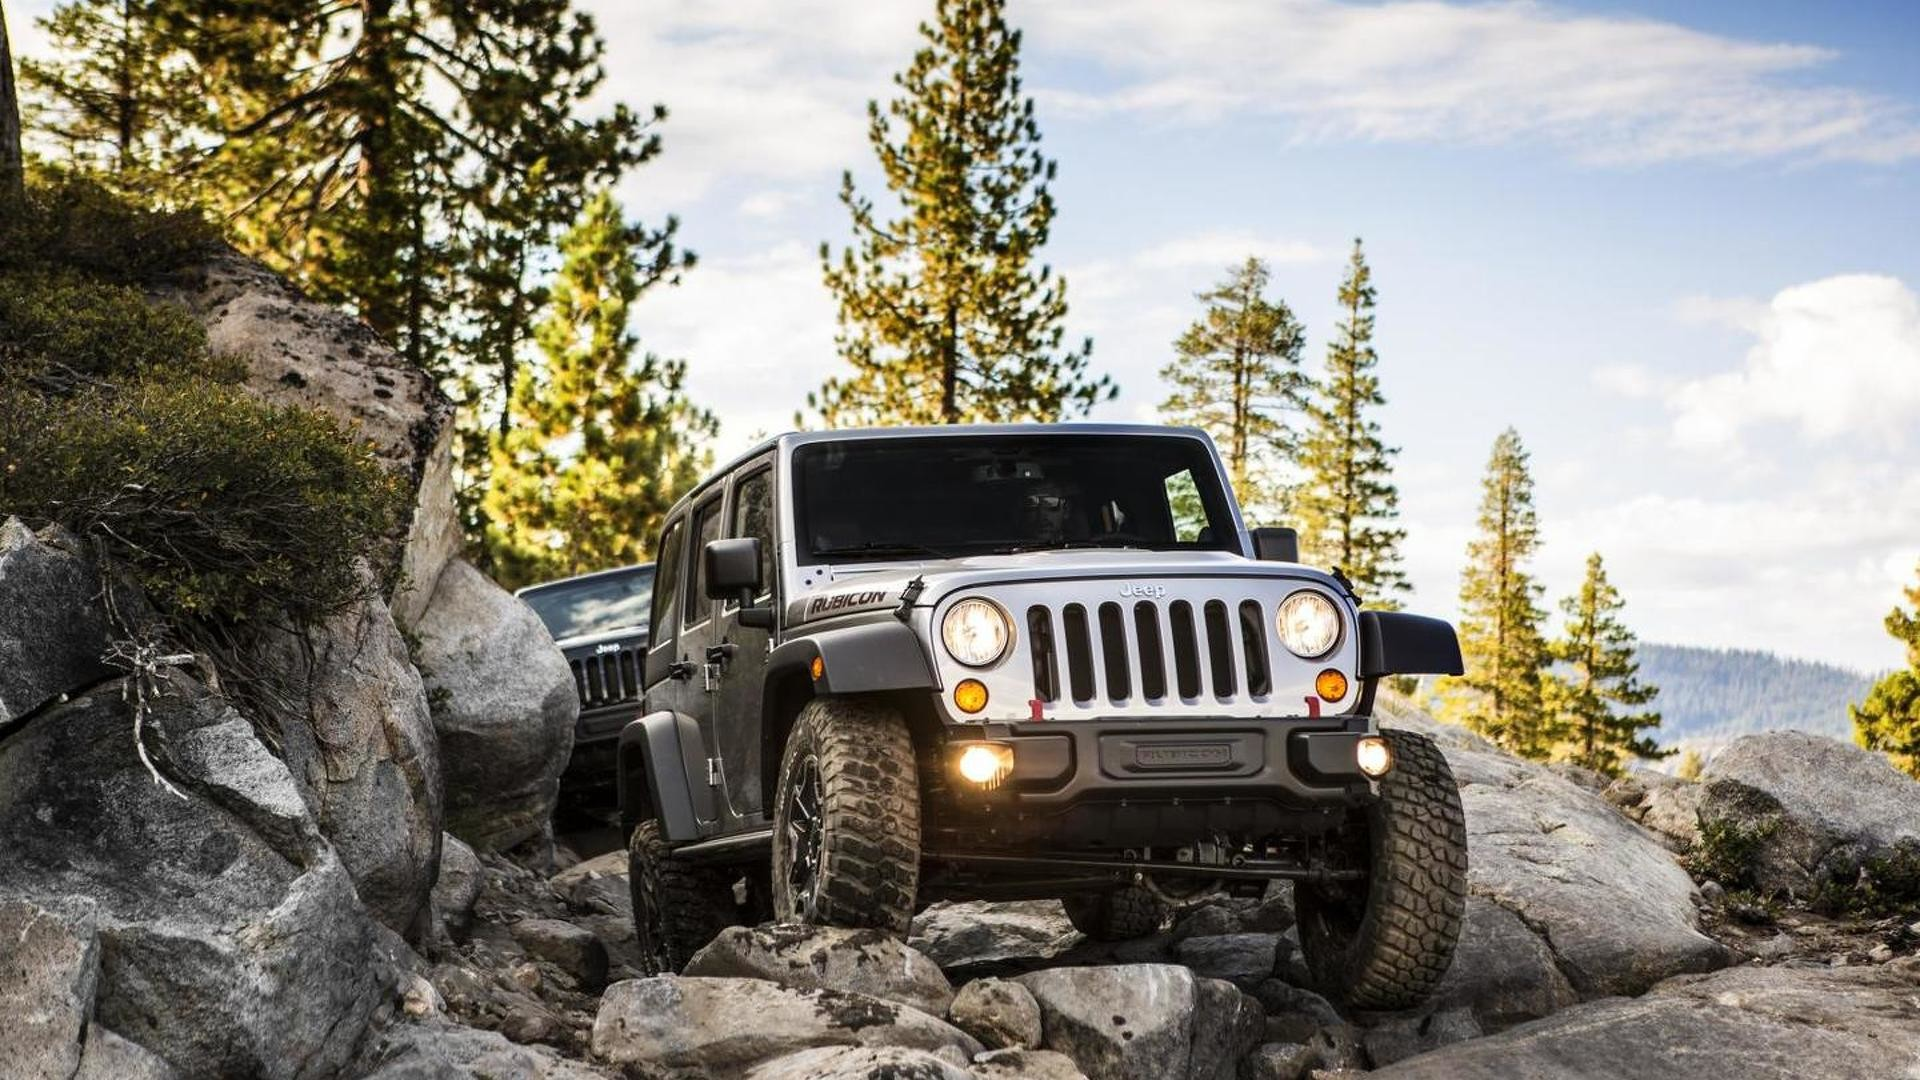 Jeep Wrangler Wallpaper HD (63+ images)